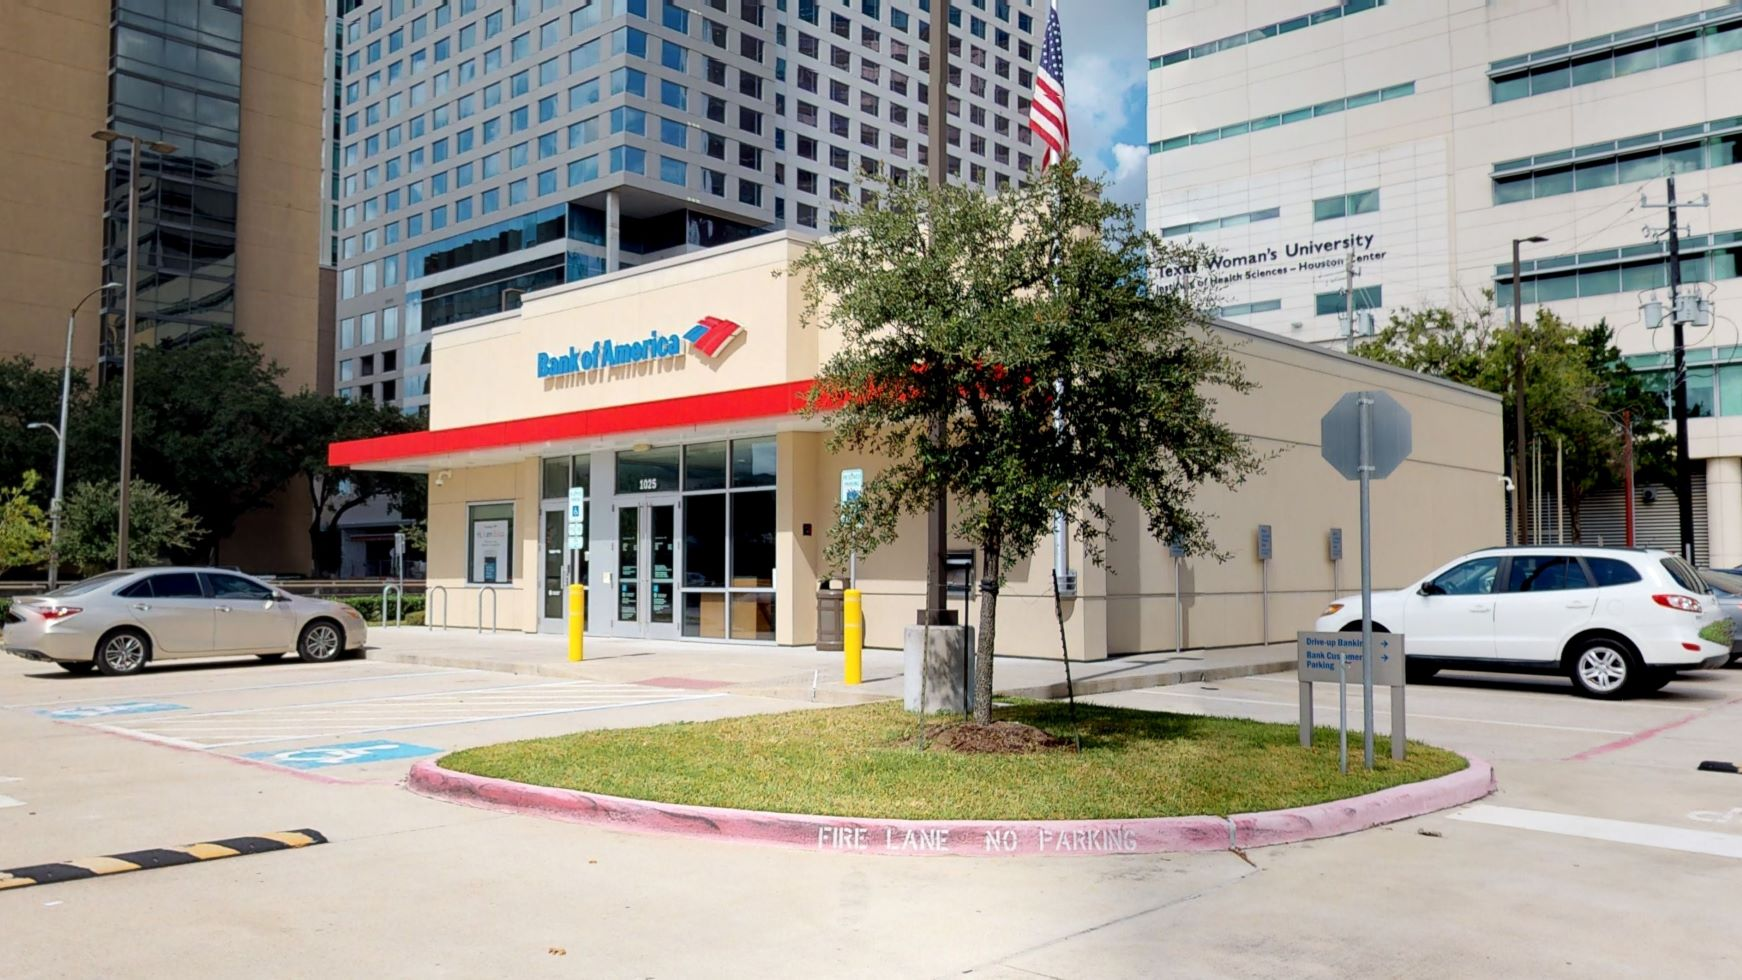 Bank of America financial center with drive-thru ATM | 1025 Holcombe Blvd, Houston, TX 77030